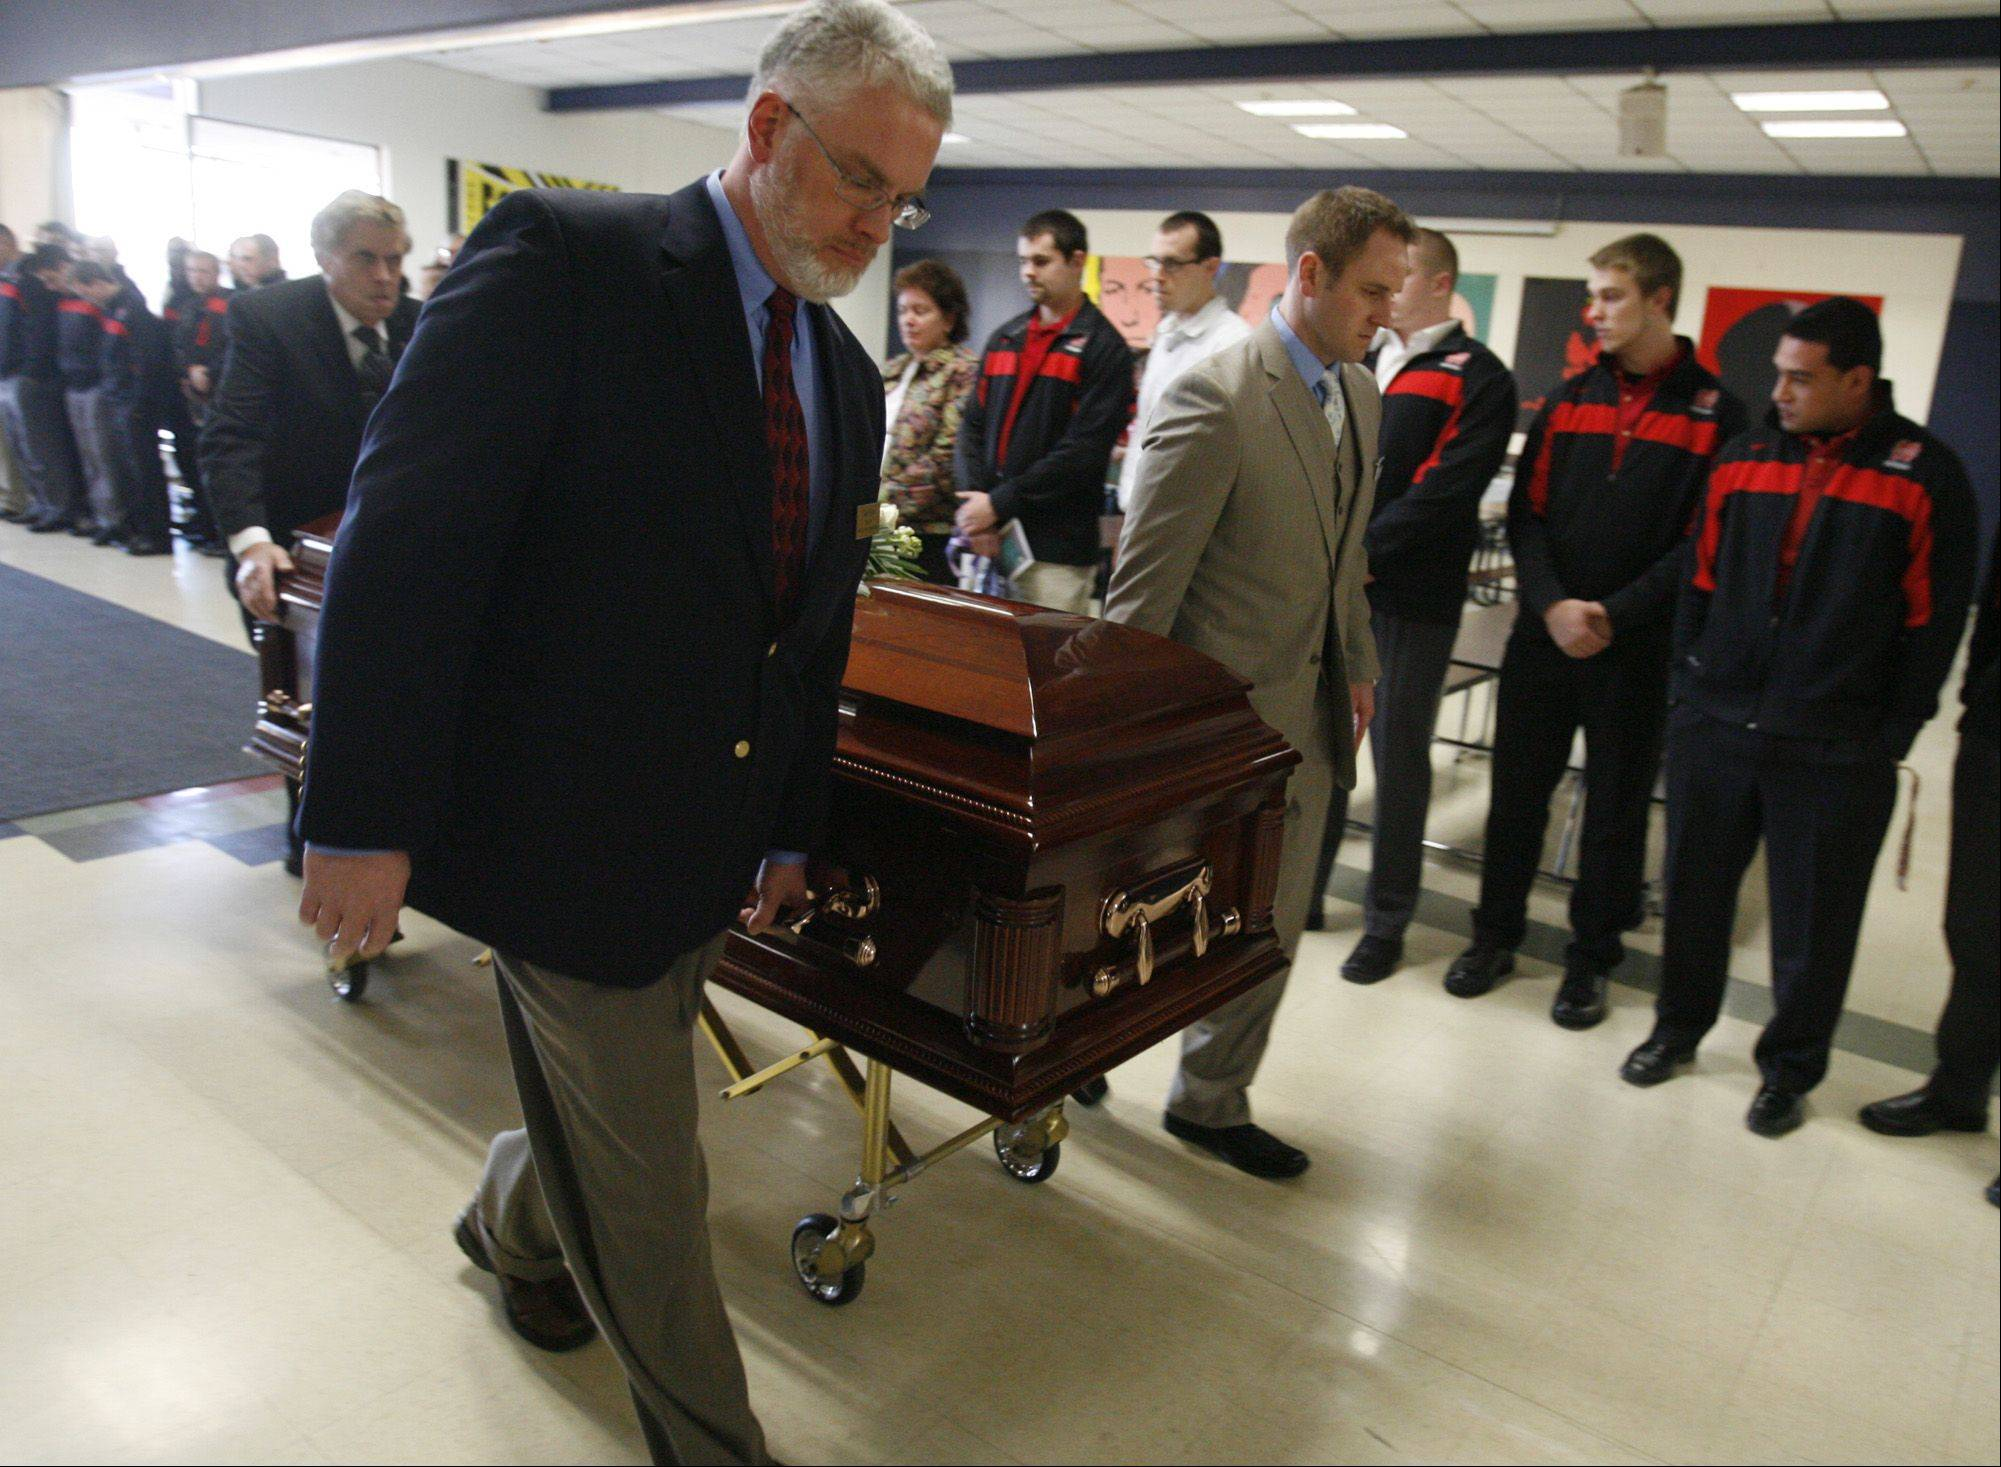 North Central College football players line up as the casket of Shaun Wild is brought into Brown Deer High School for the memorial service.